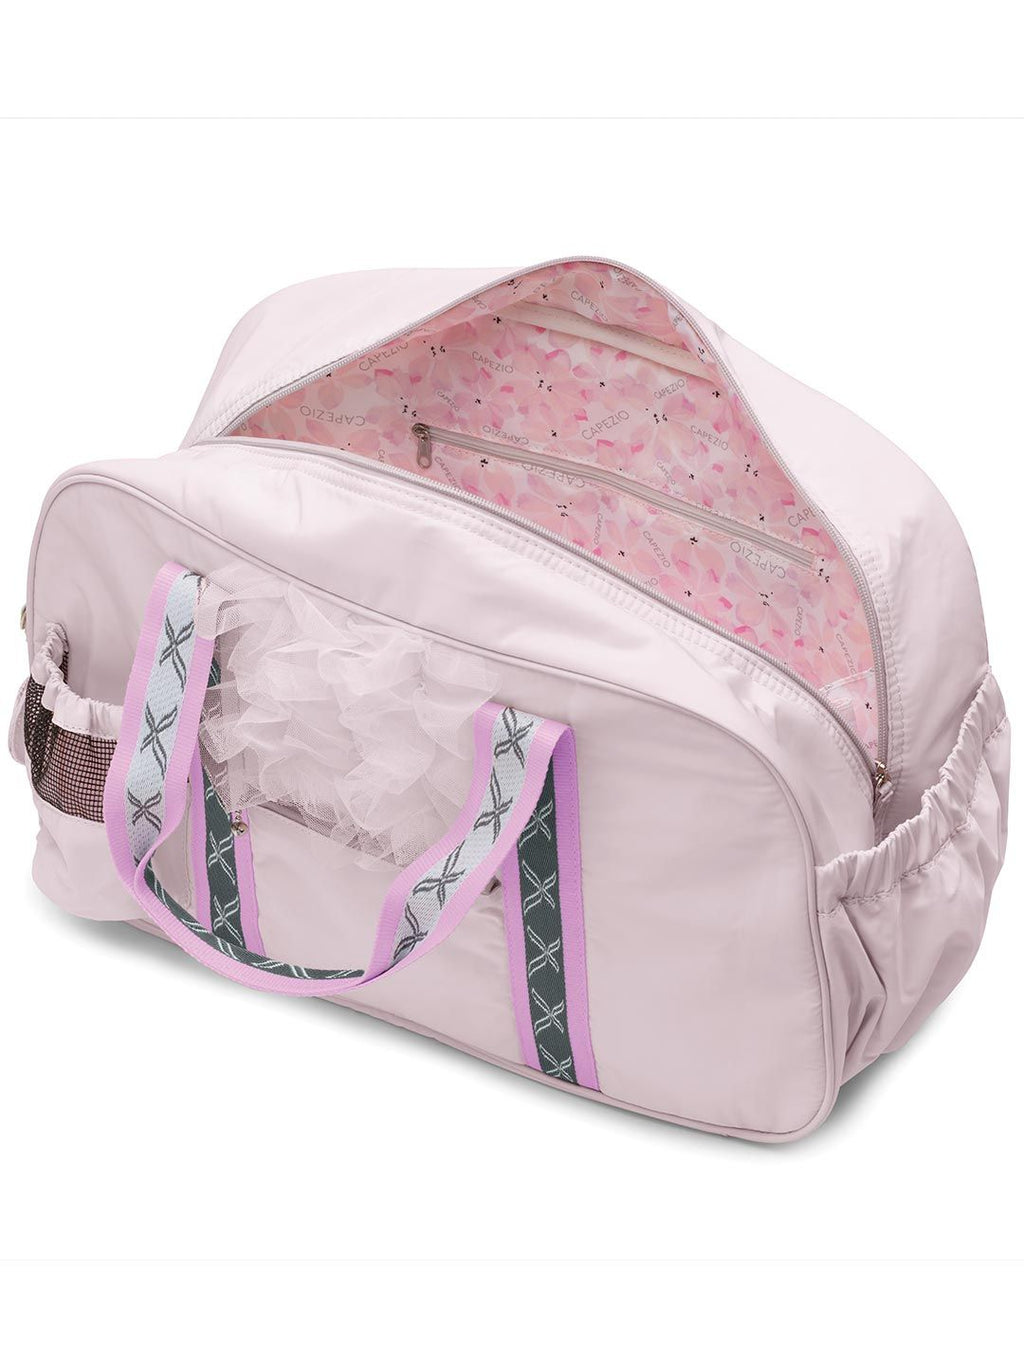 Hanami Duffle - Child